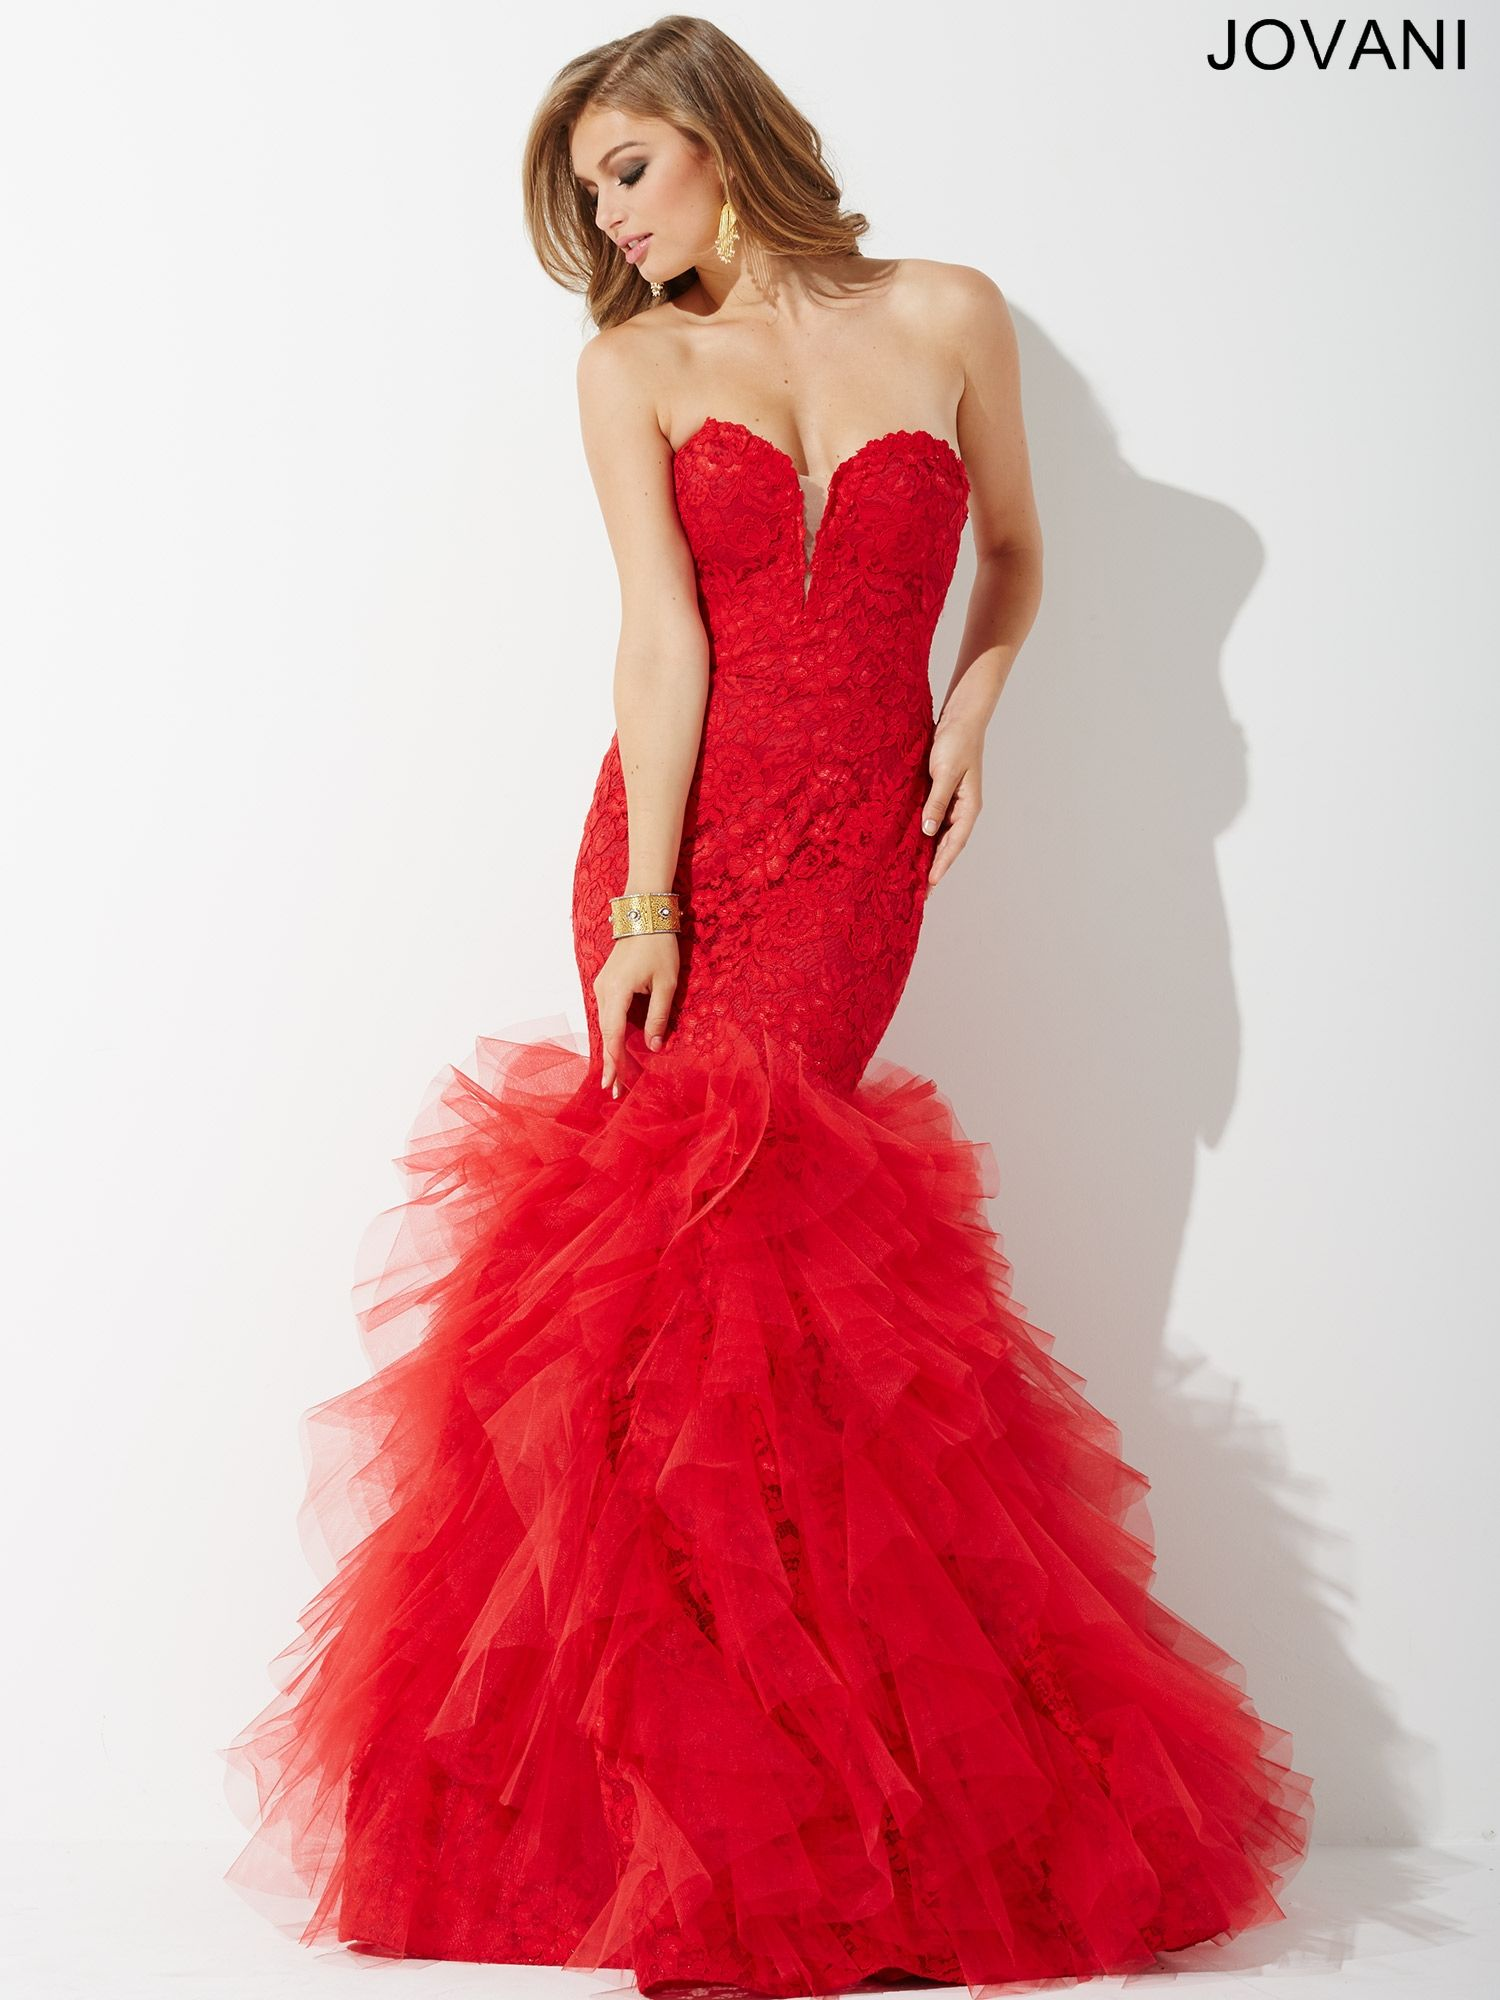 835a18c55ebd9 Stunning Strapless Lace Mermaid Gown features Sweetheart Neckline and  Ruffle Bottom JP37478